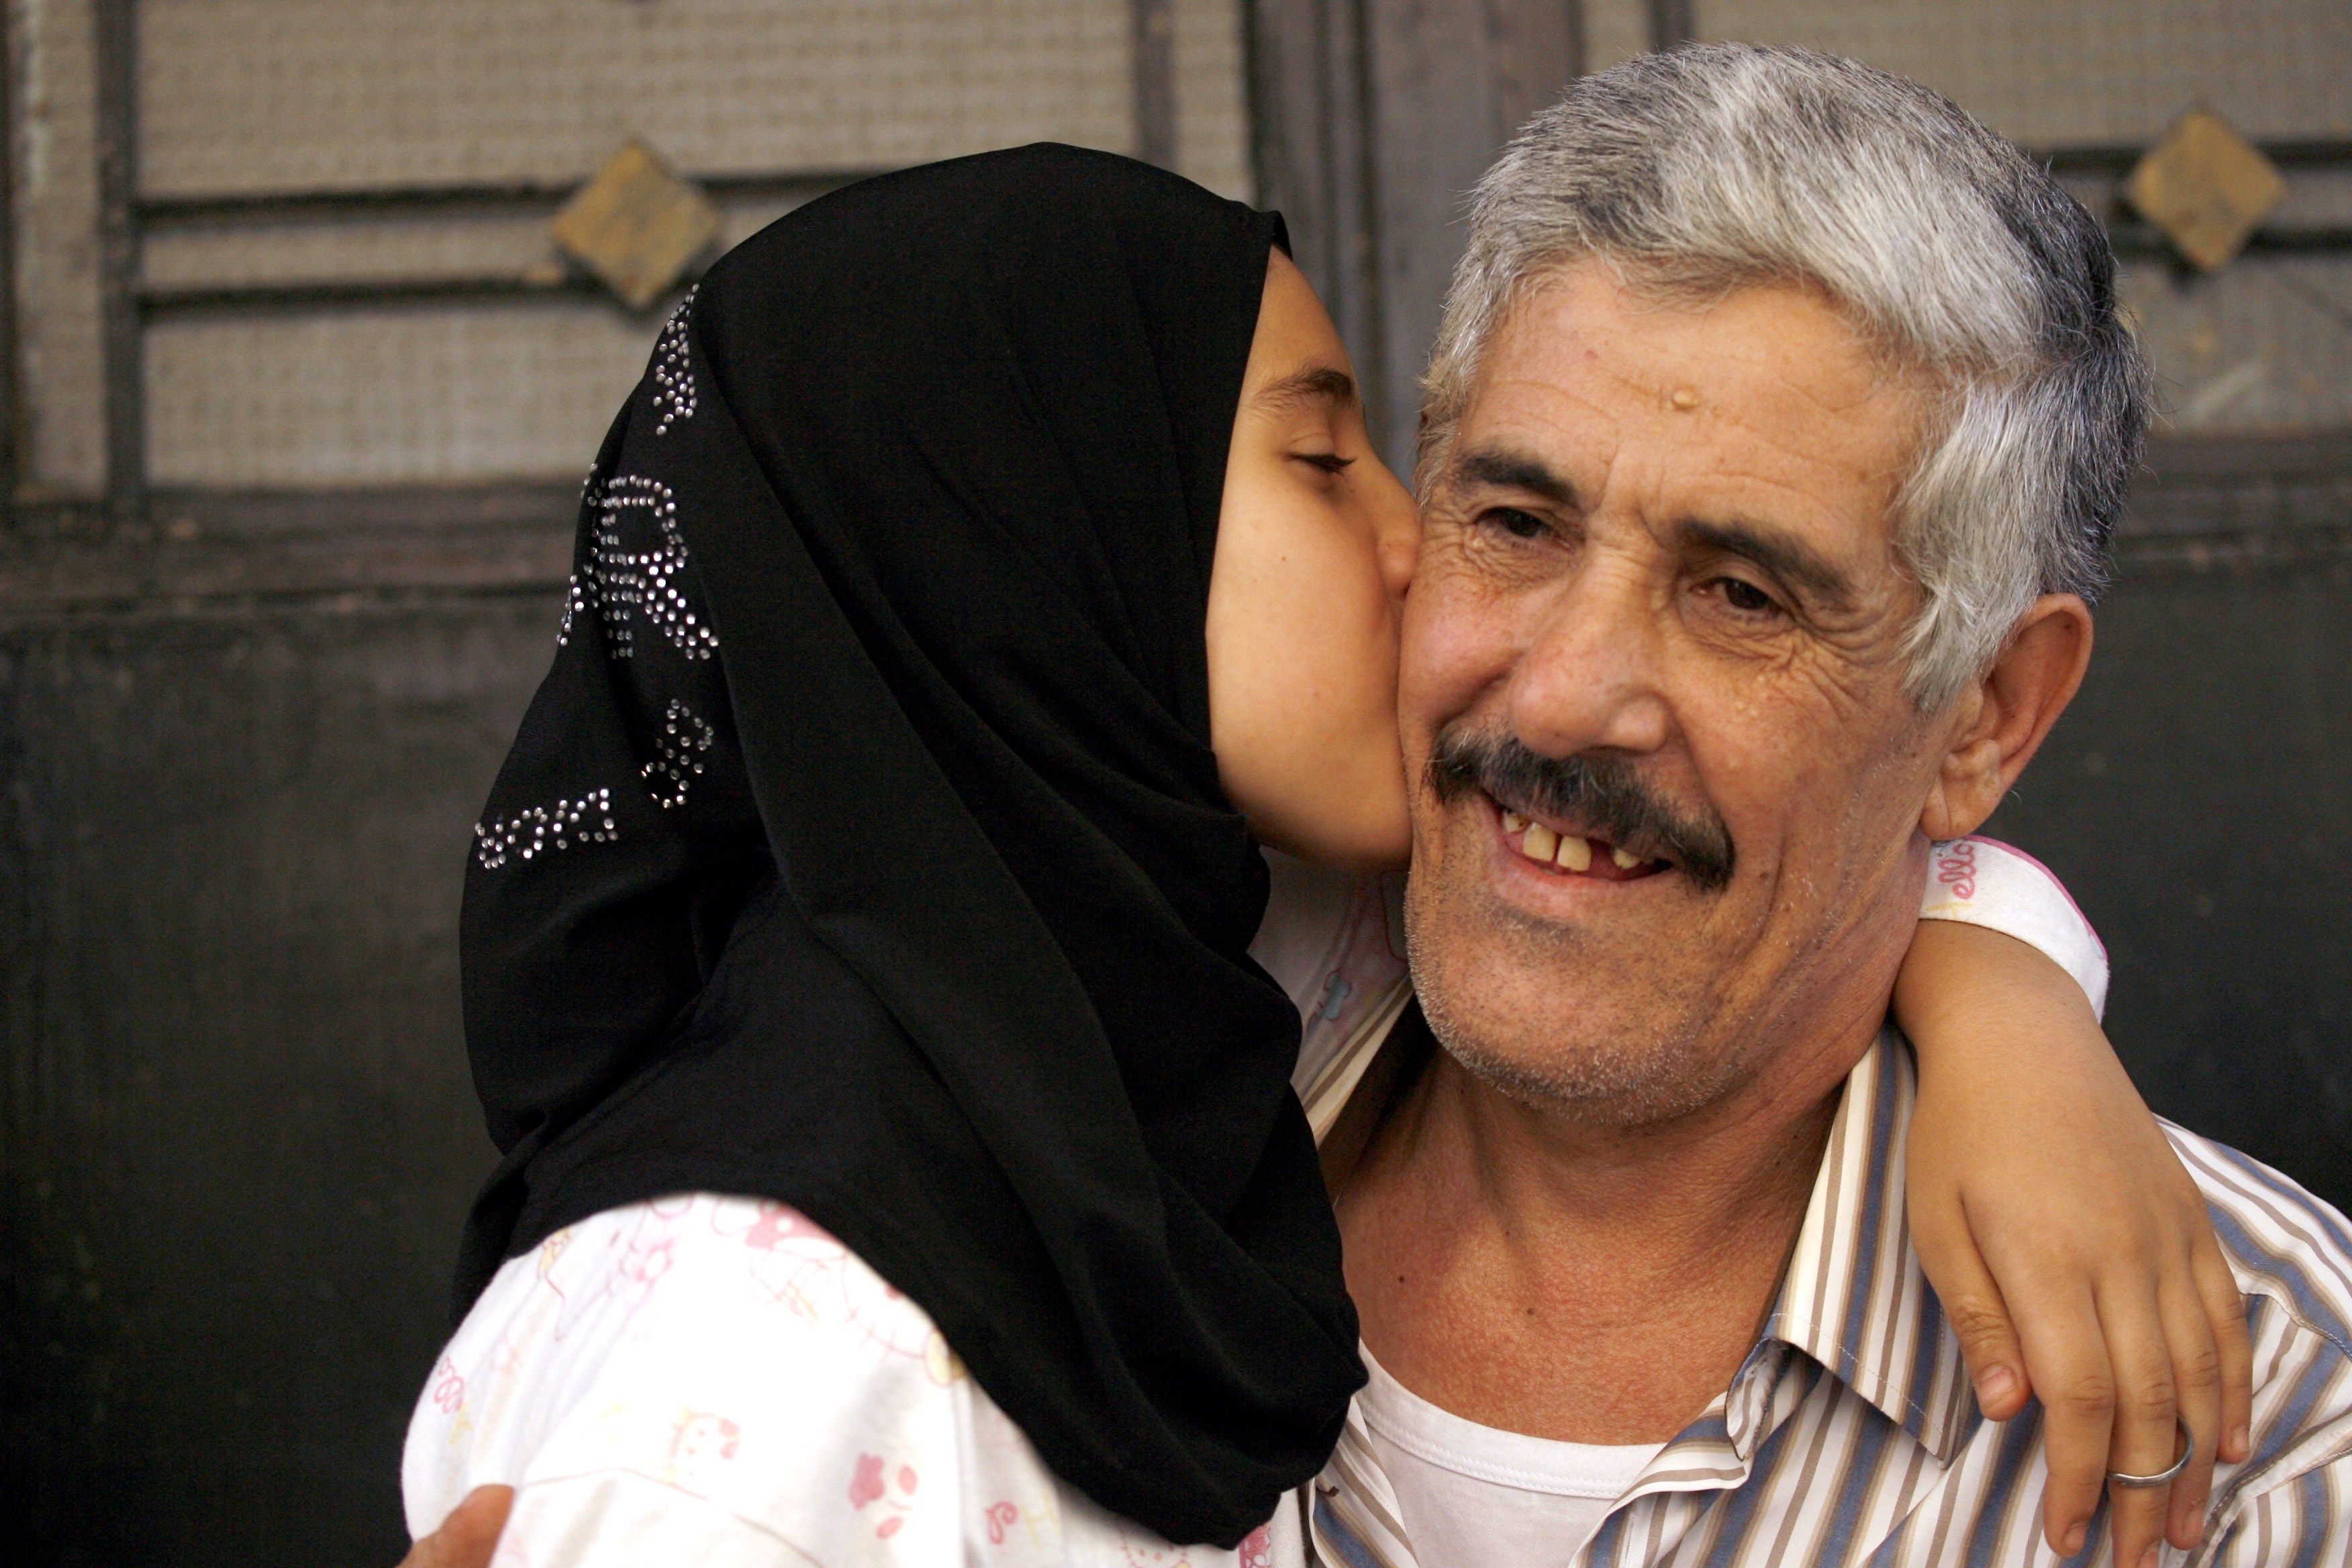 Abbas Hammoud, one of the nine Lebanese pilgrims held hostage in Syria for 17 months, is kissed by his daughter Fatima upon his arrival at his home in the coastal city of Tyre in south Lebanon on Sunday (AFP PHOTO MAHMOUD ZAYYAT)